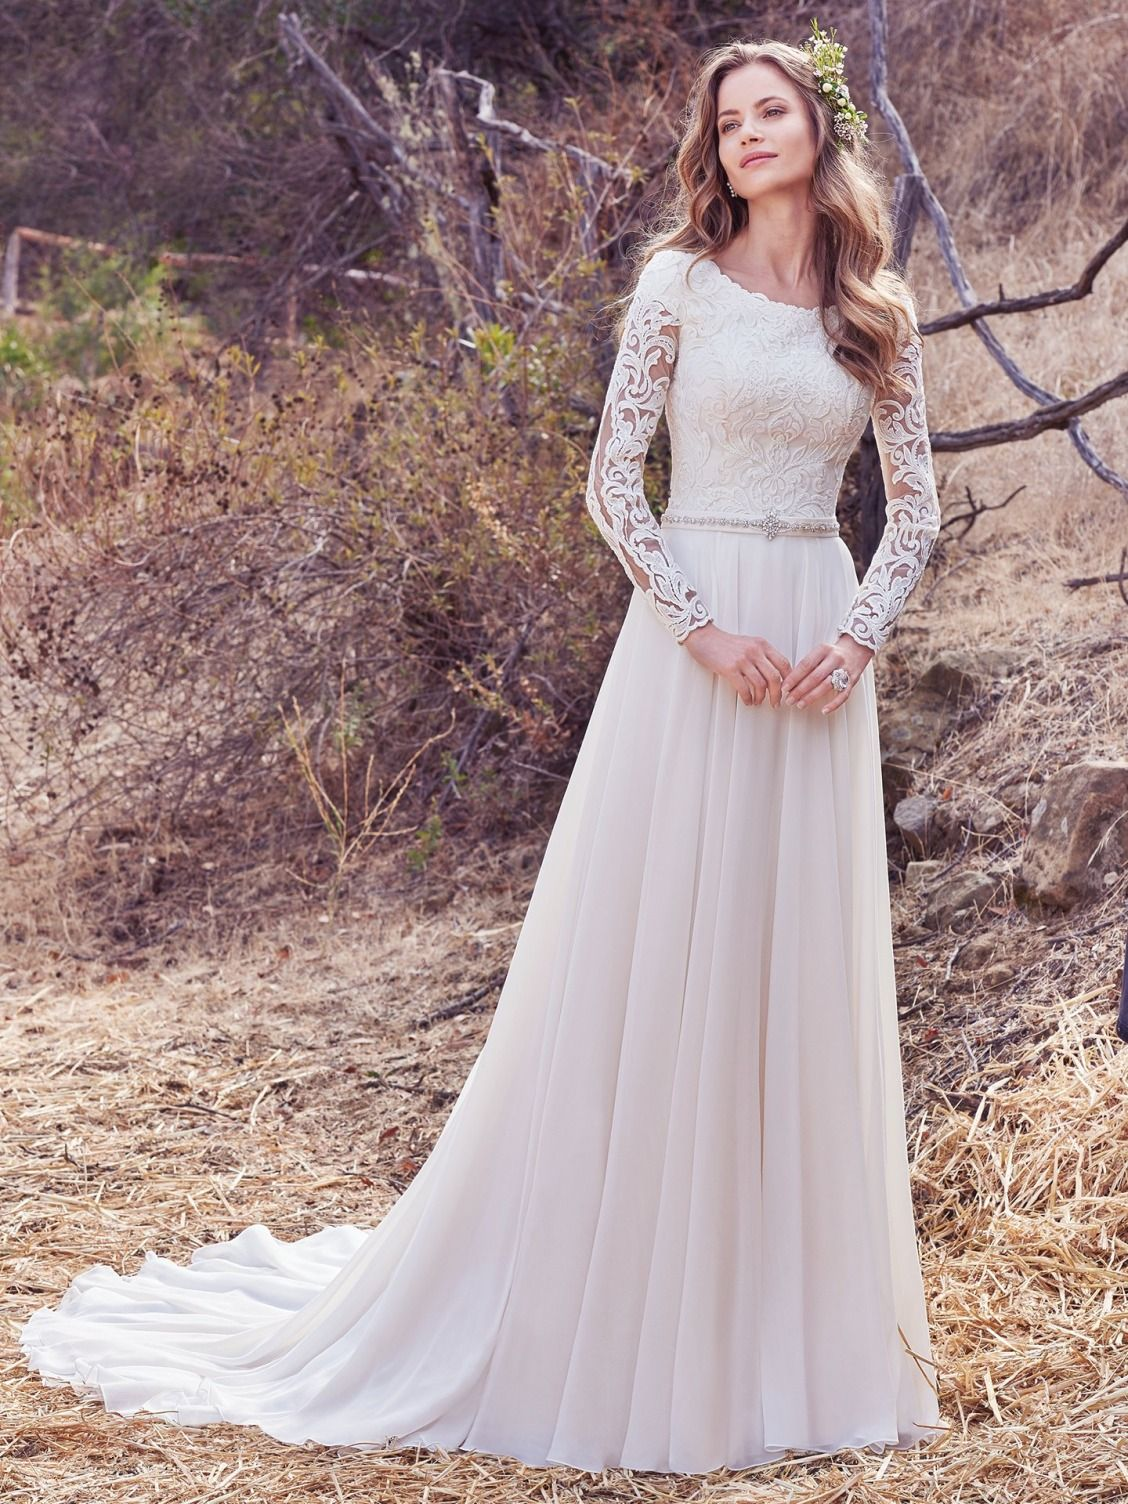 5f24804f5492 ... This Aurora Chiffon A-line wedding dress features a lace bodice with  illusion long-sleeves, accented in lace appliqués, over modest cap-sleeves.